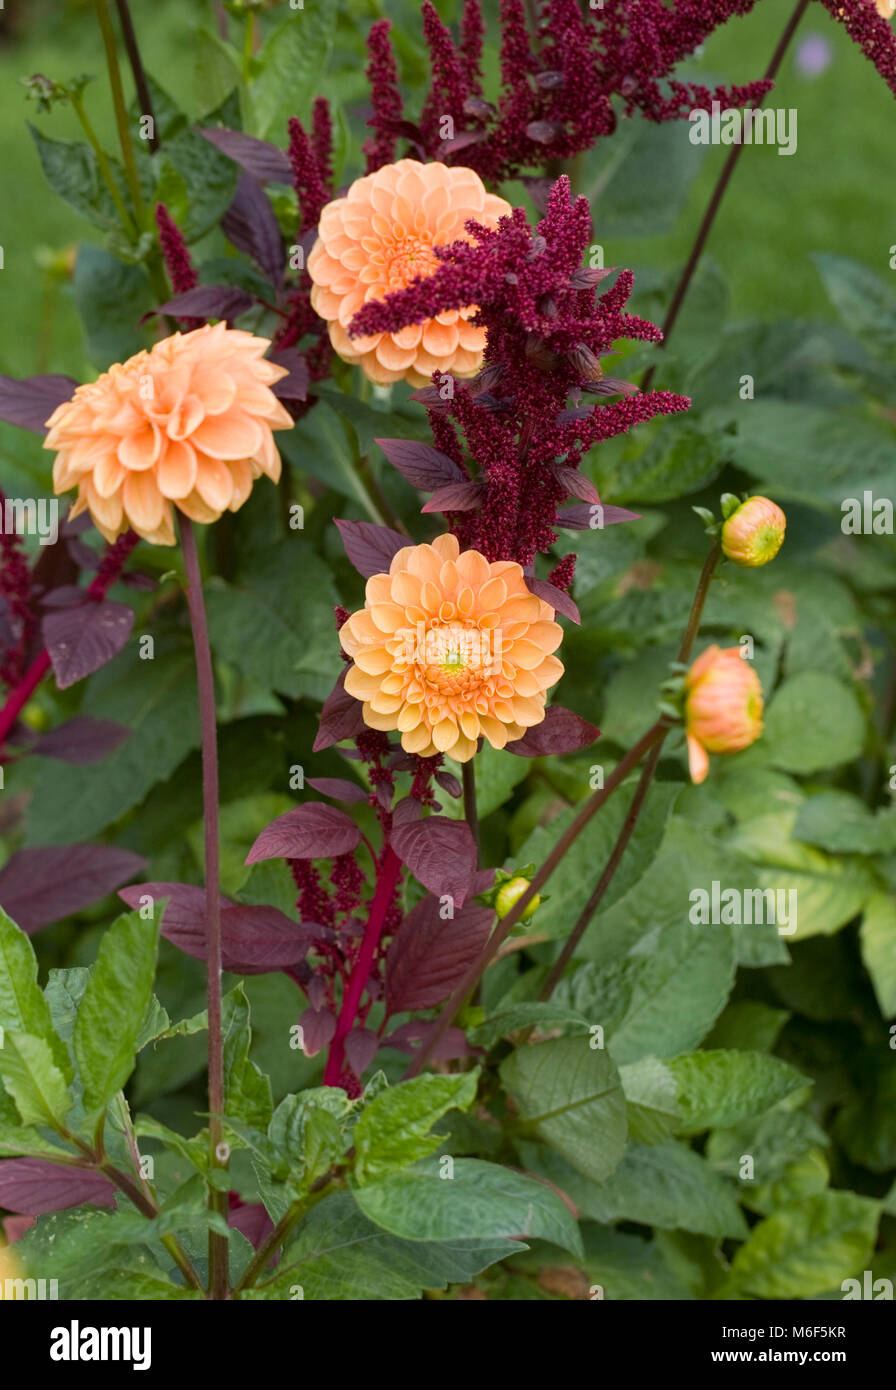 Amaranthus and Dahlia 'Apricot Jewel' flowers growing in an herbaceous border. - Stock Image